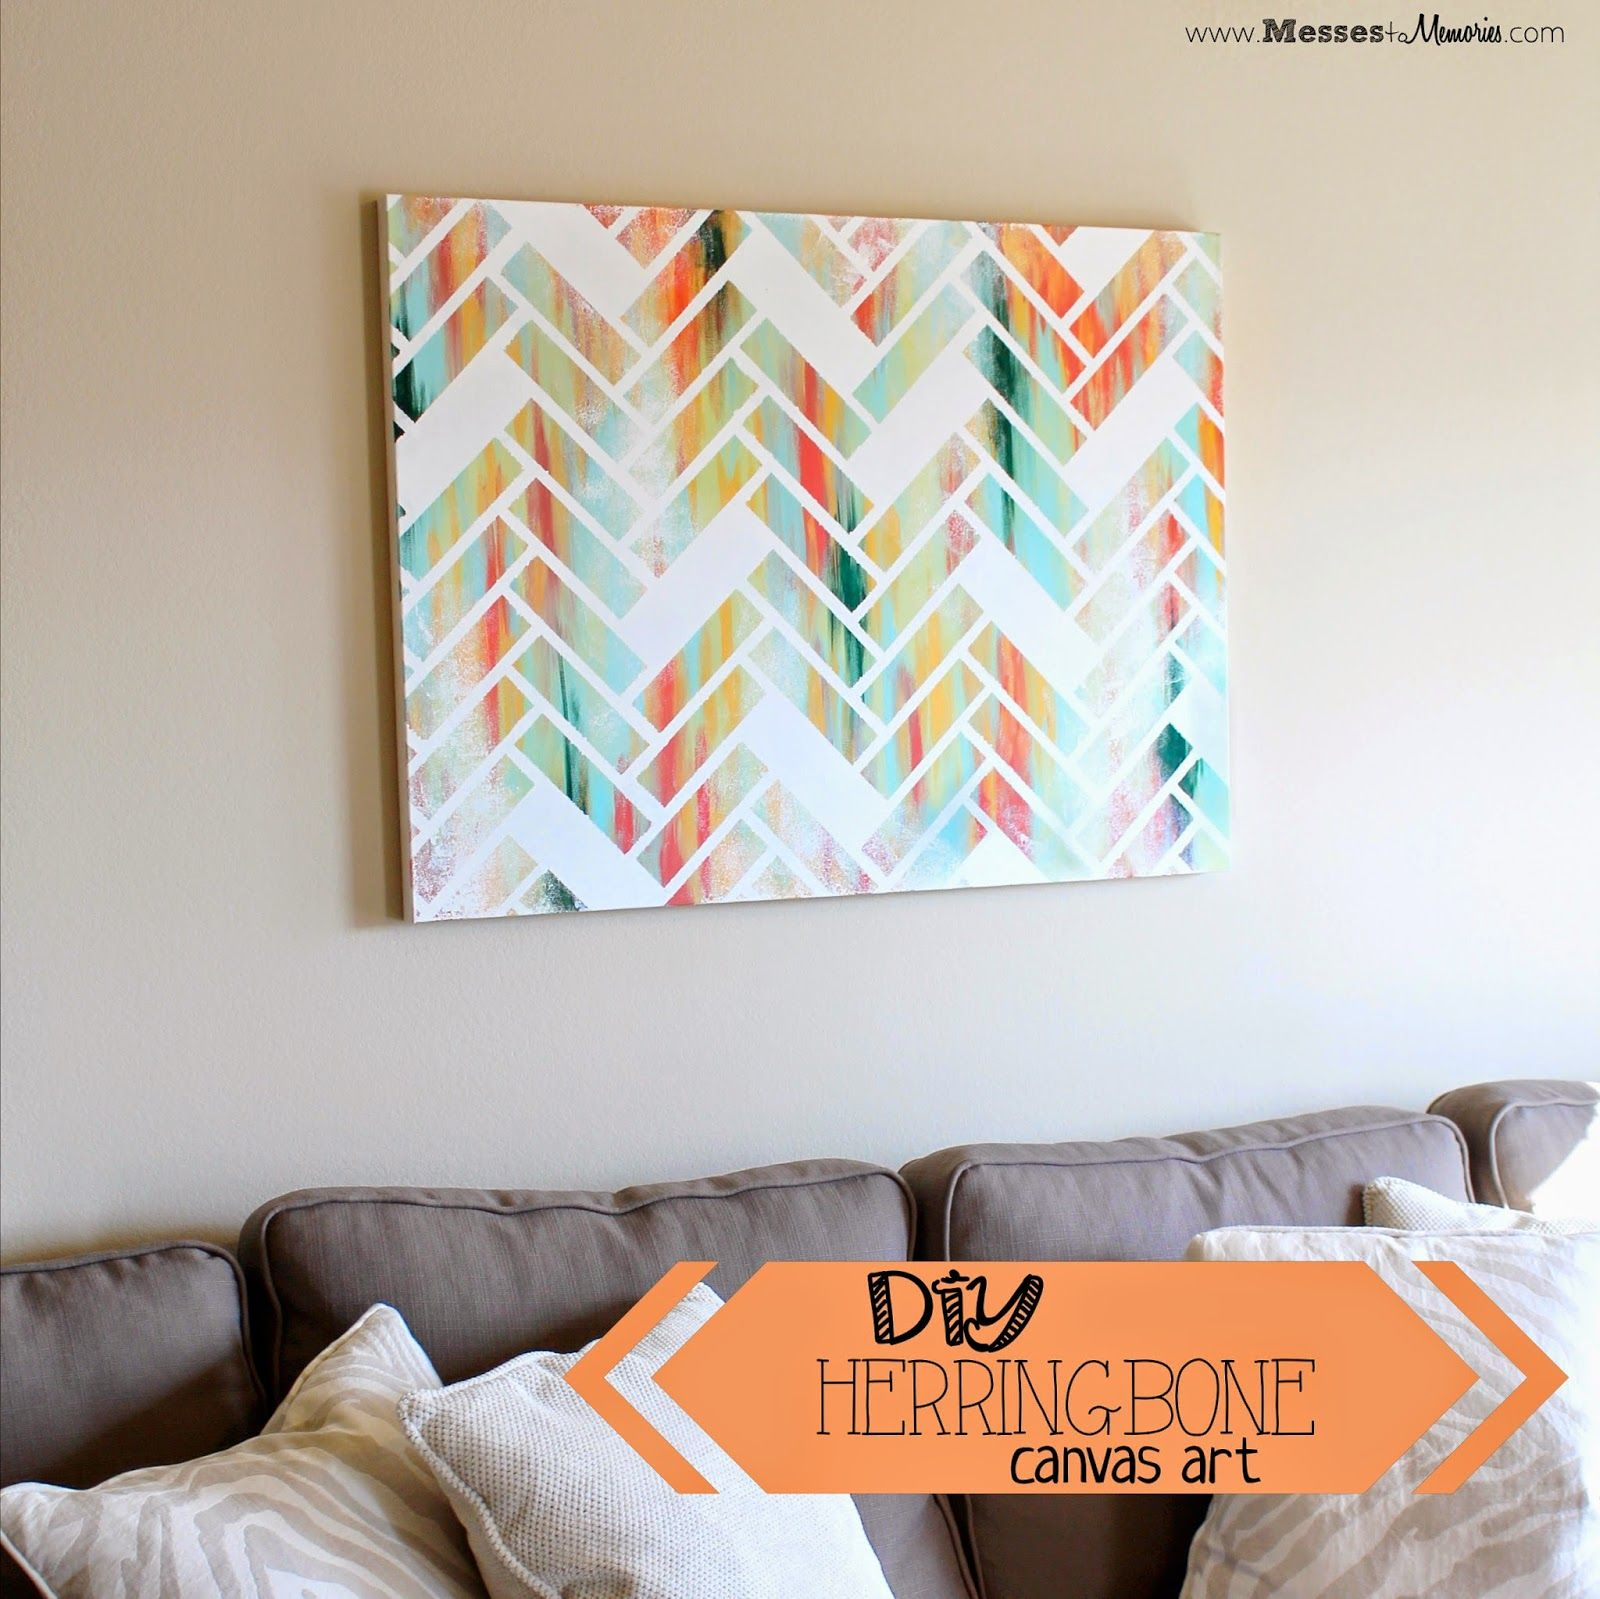 DIY Herringbone Art - Look what you can do with a canvas, paint, and ...